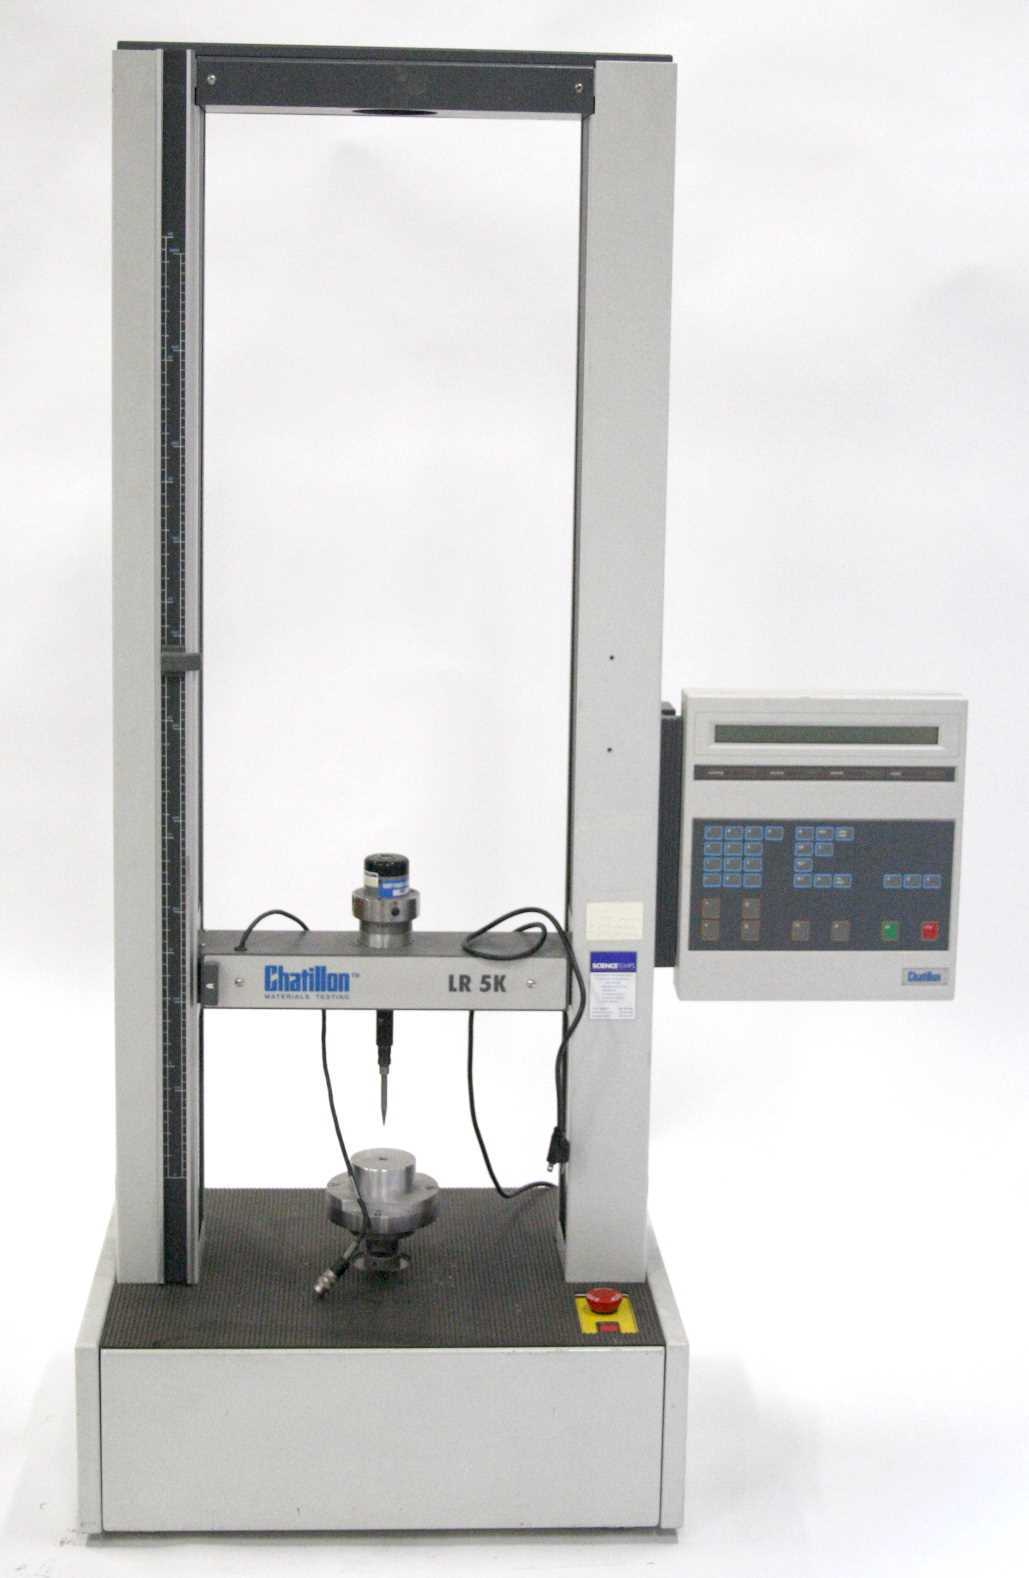 Chatillon TCD 200 Tension and Compression Tester